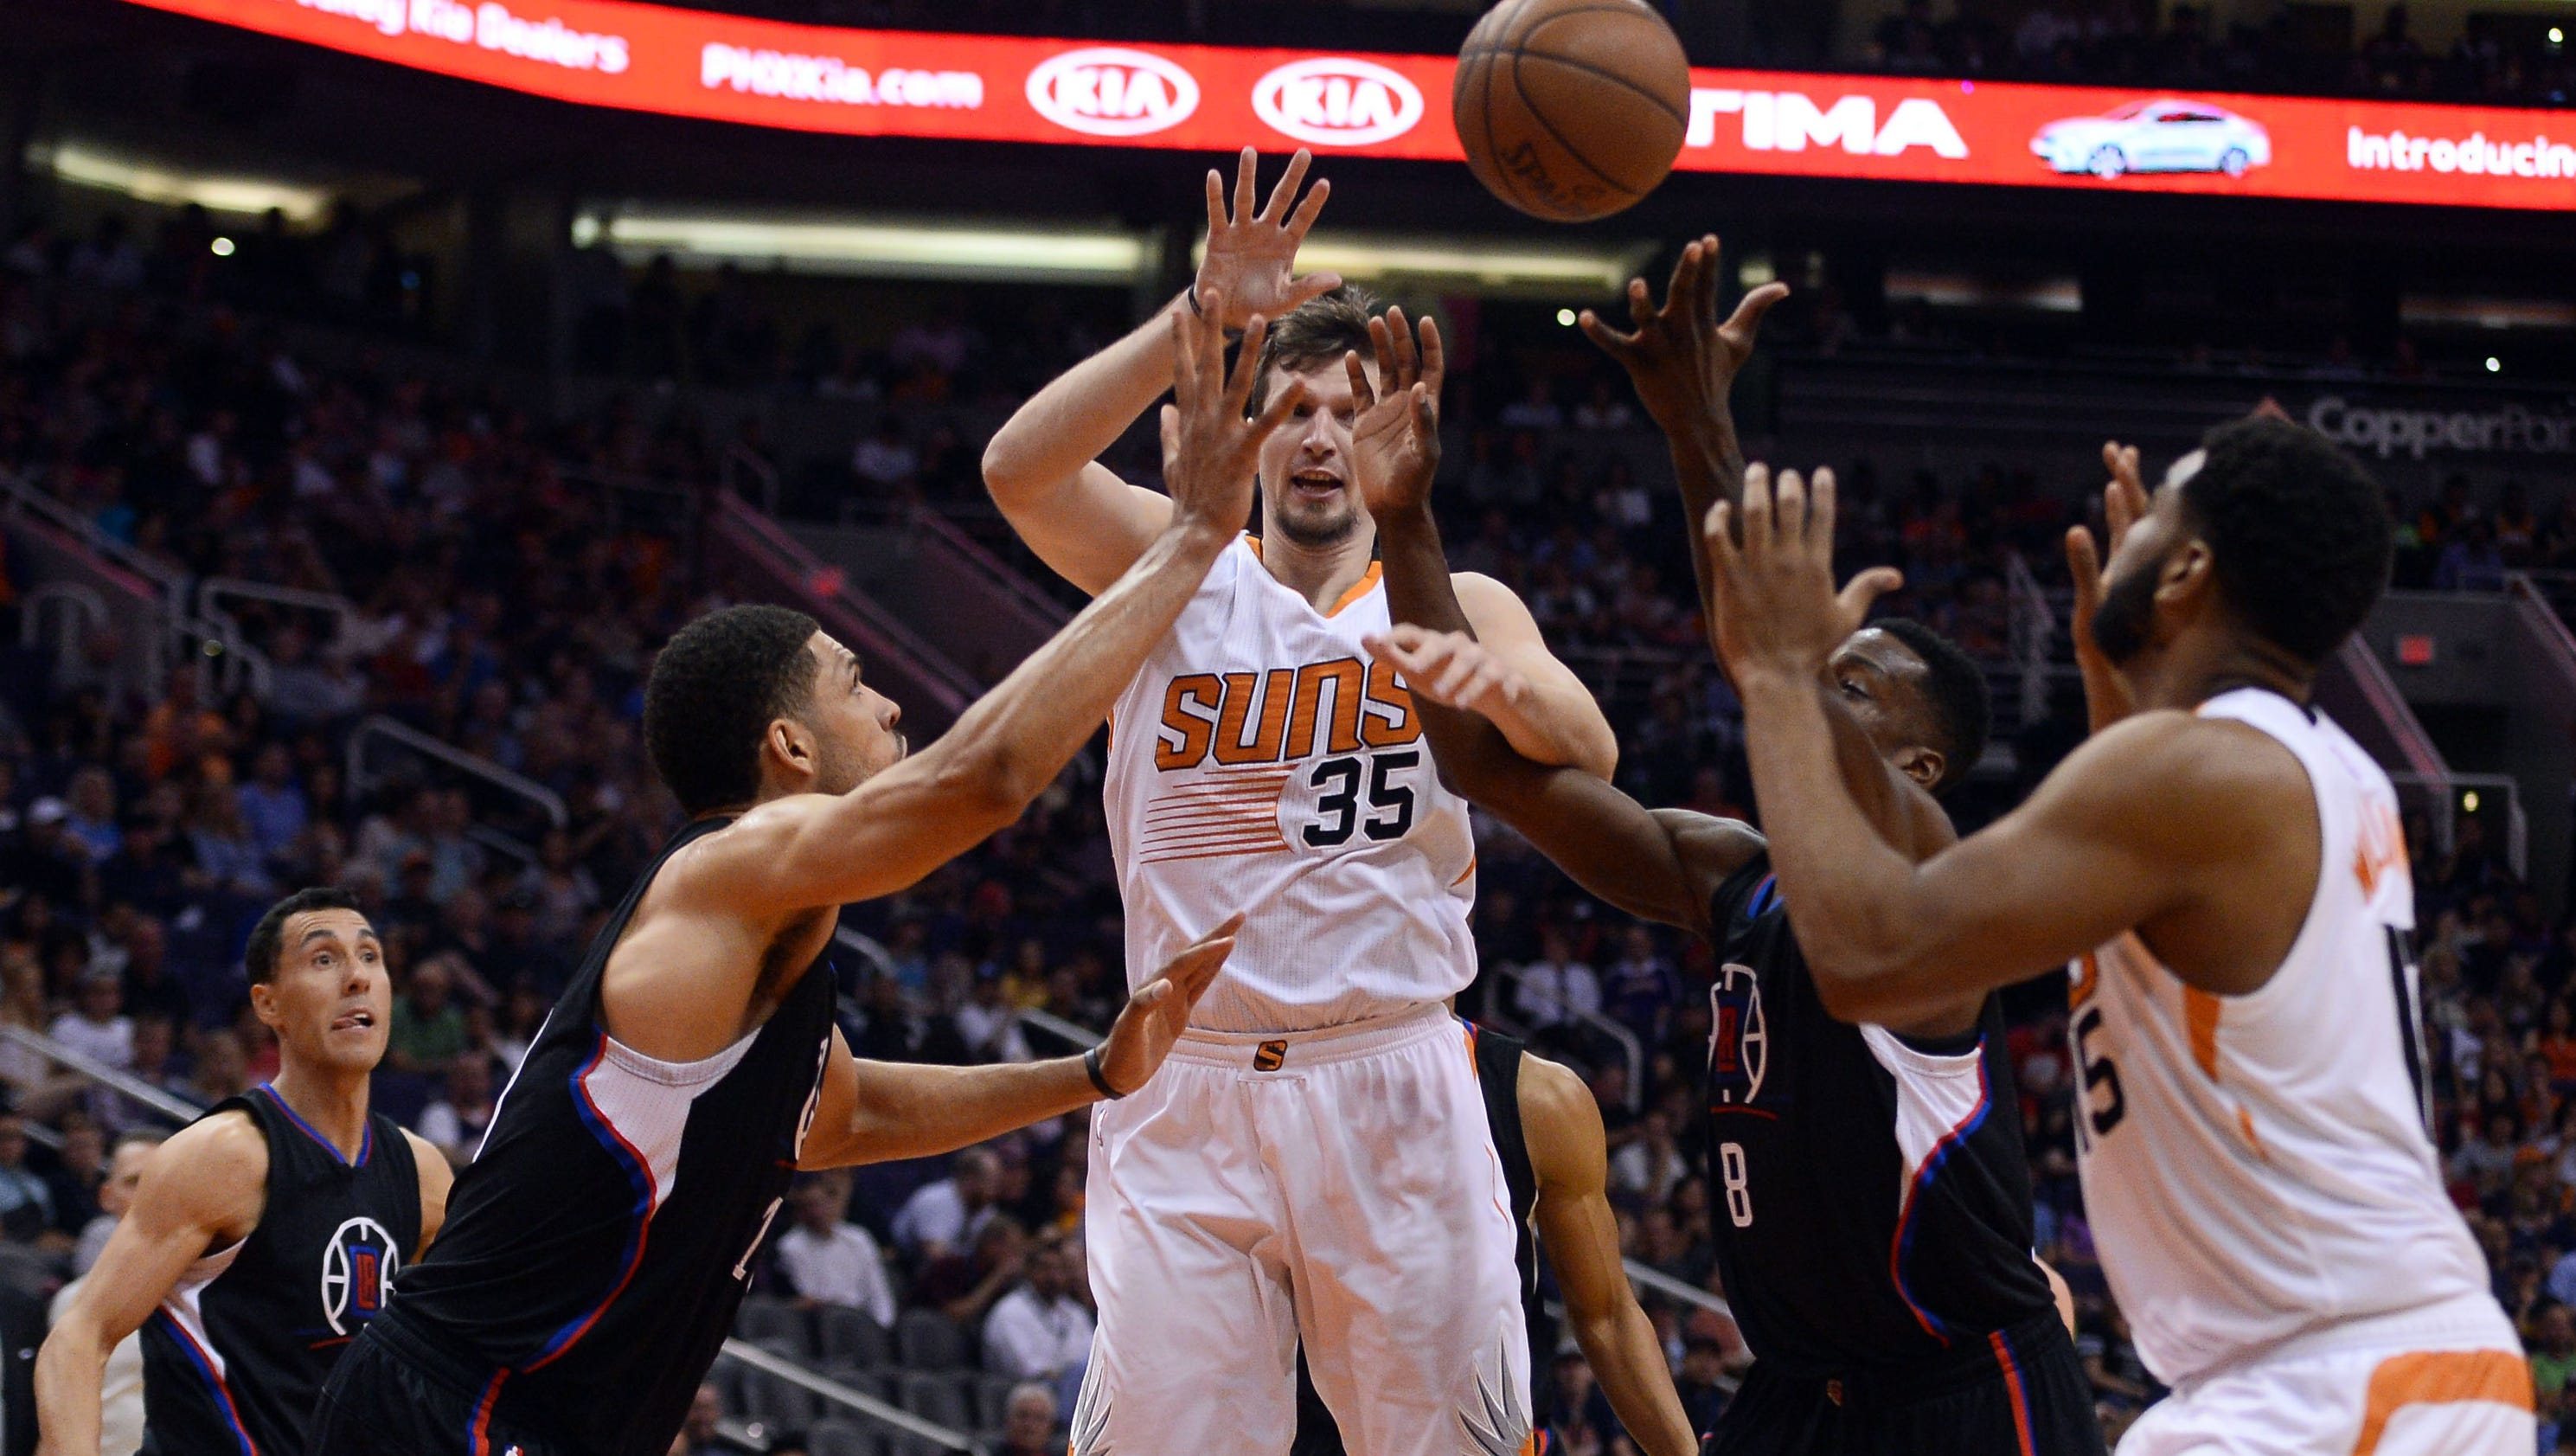 636039206695377392-usp-nba--los-angeles-clippers-at-phoenix-suns